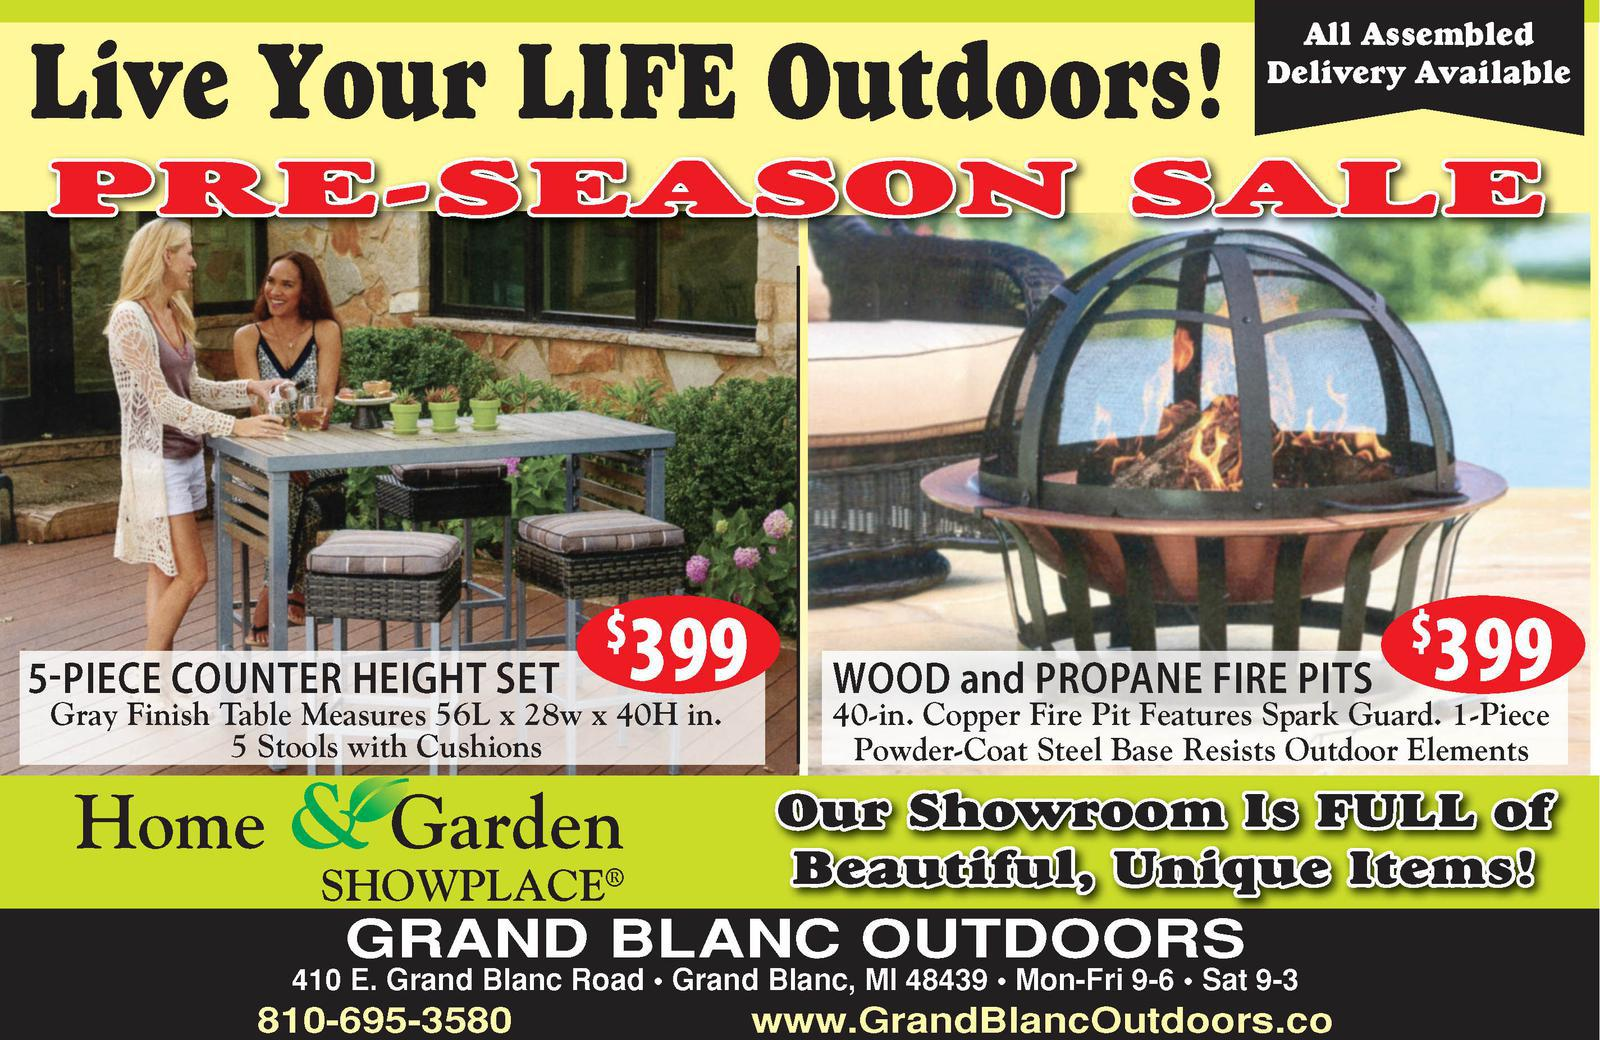 Garden & Patio Showplace